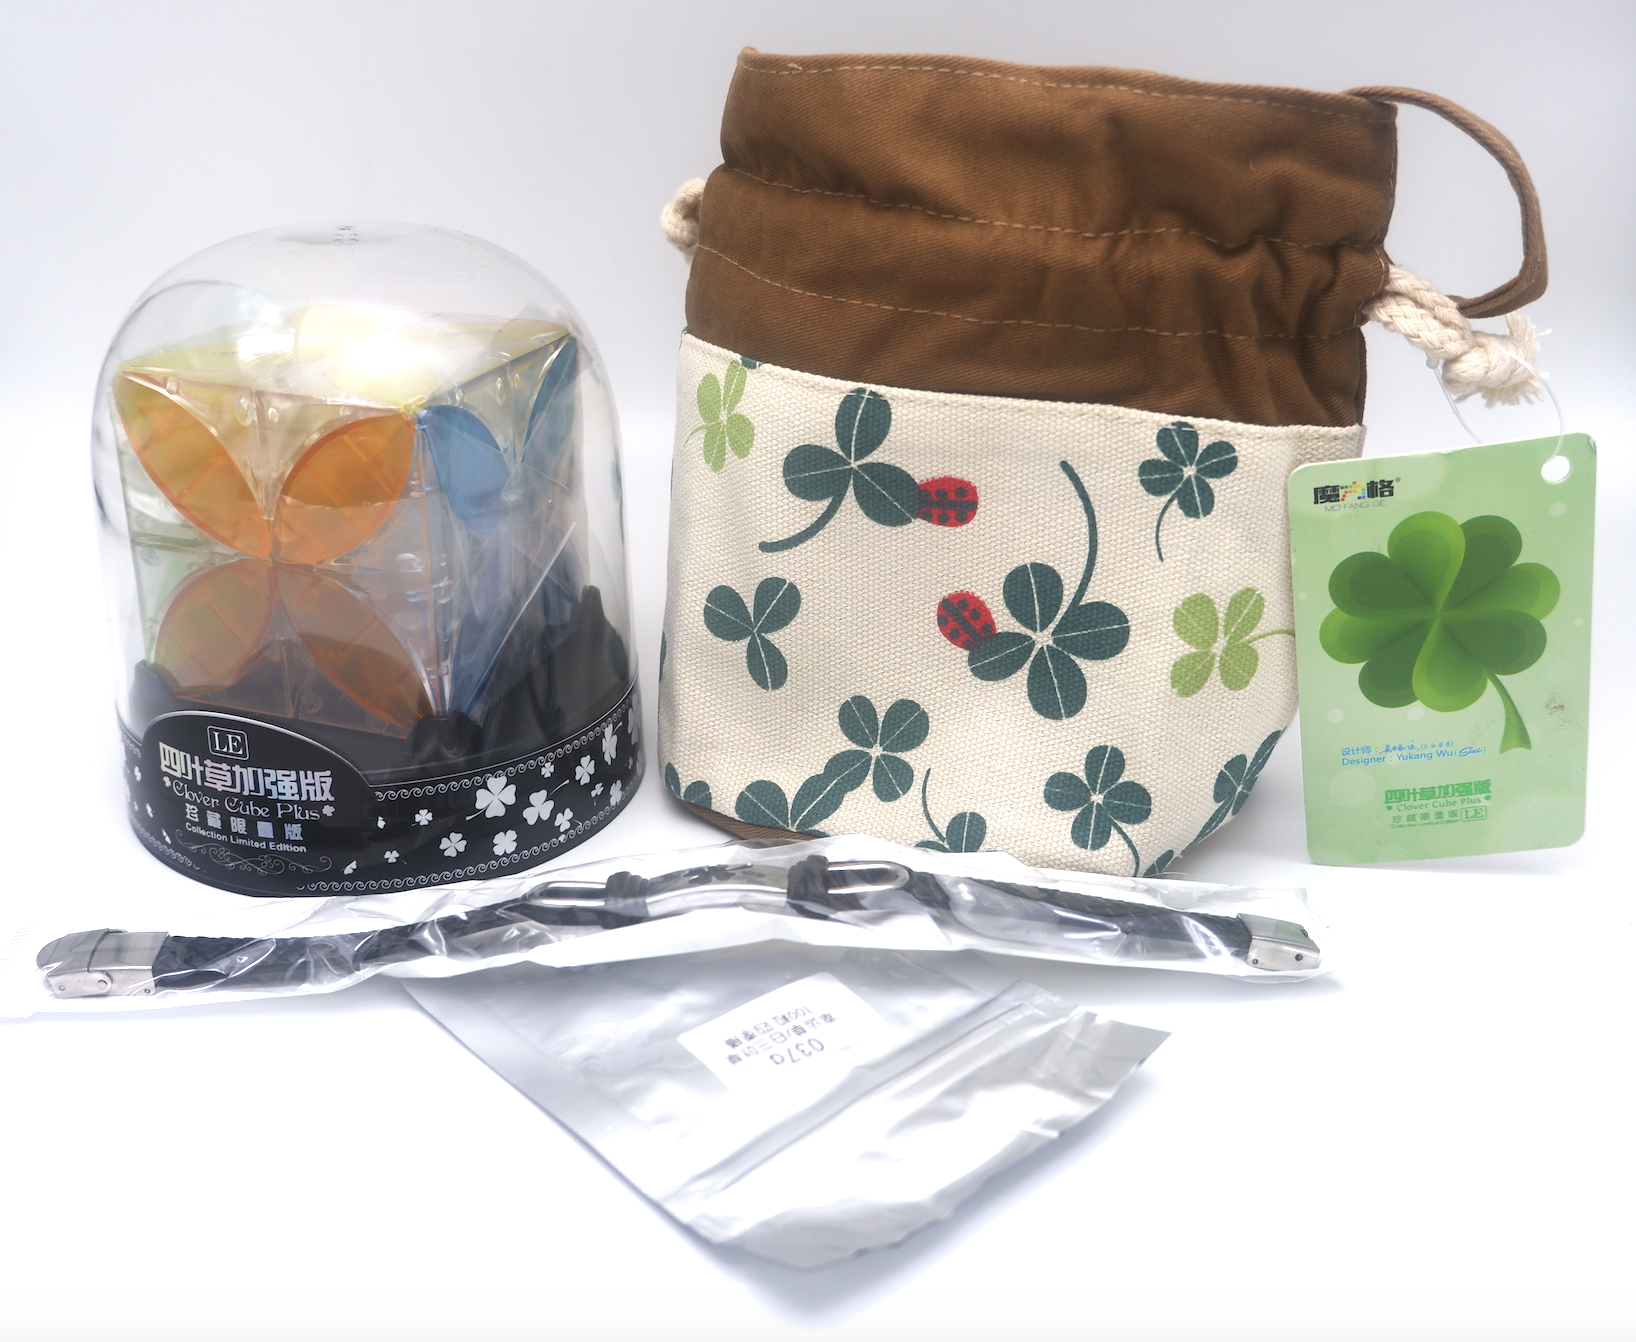 QiYi Clover Cube Plus Limited Edition